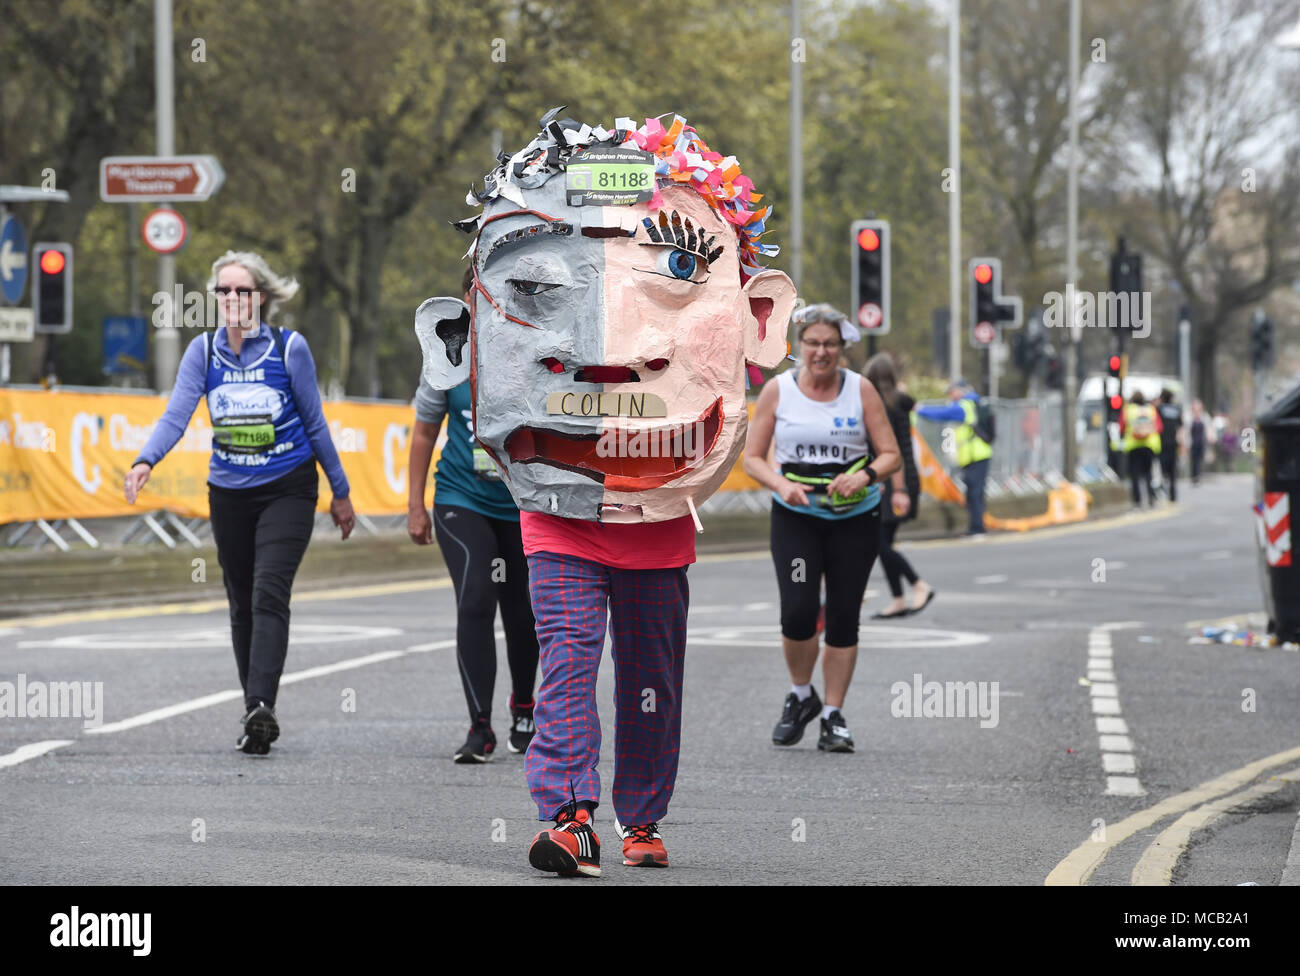 Brighton UK 15th April 2018 - Thousands of runners some in some interesting costumes take part in the Brighton Marathon today as the marathon season gets under way in the UK Credit: Simon Dack/Alamy Live News - Stock Image